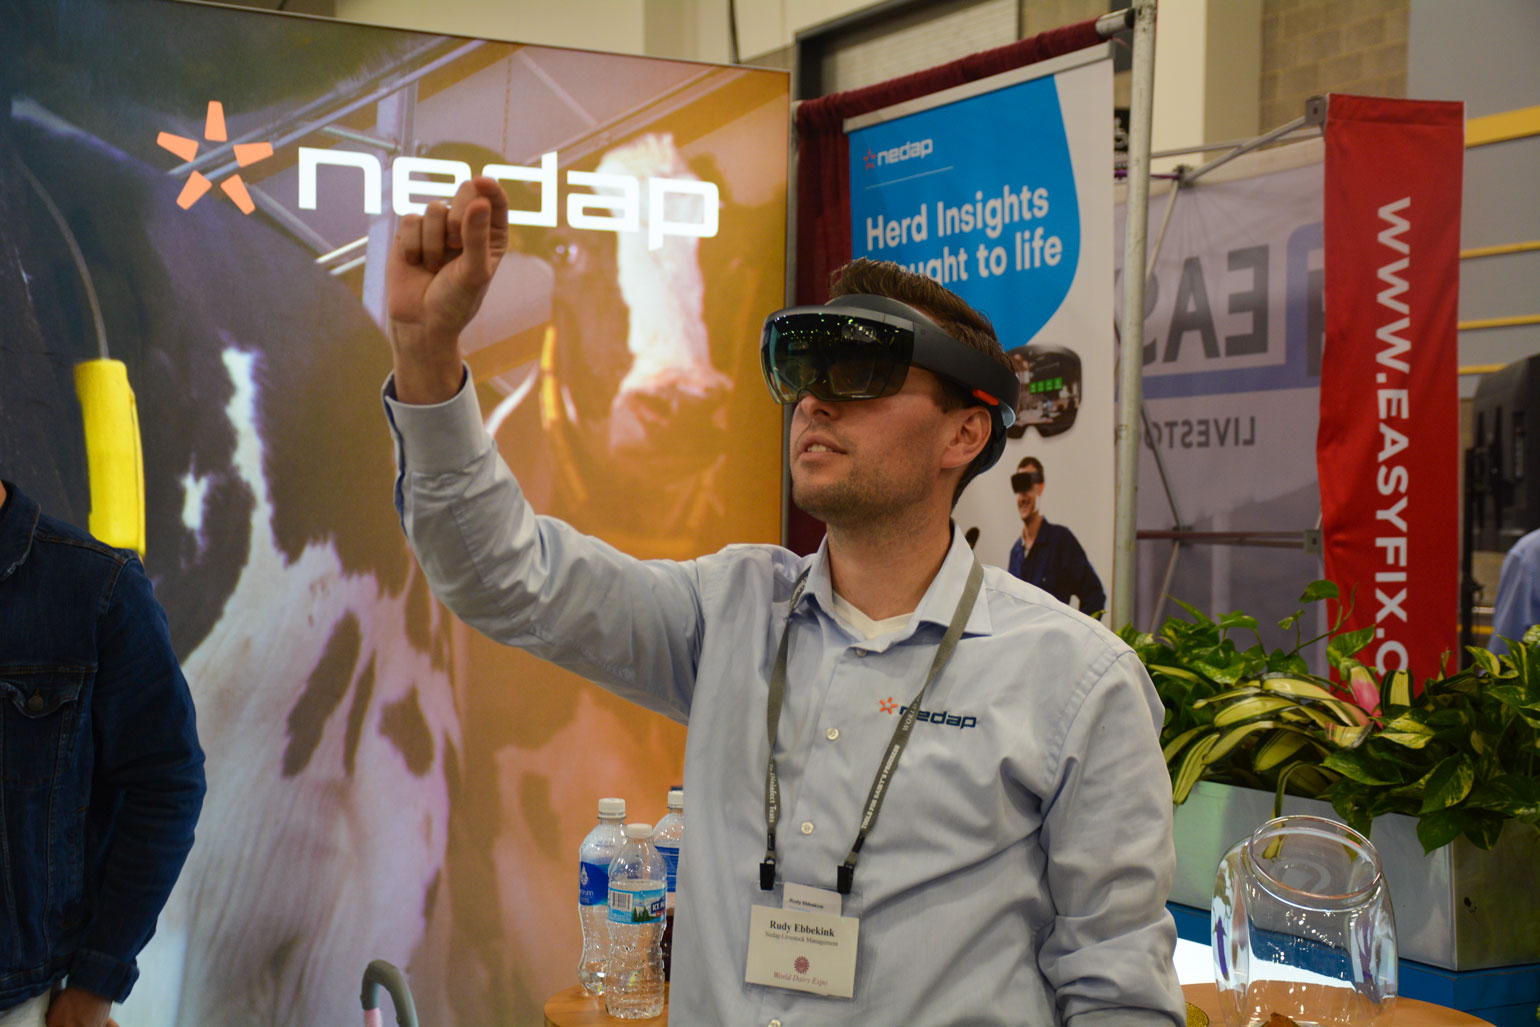 Rudy Ebbekink demonstrates Nedap's dairy augmented reality system using Microsoft Hololens goggles